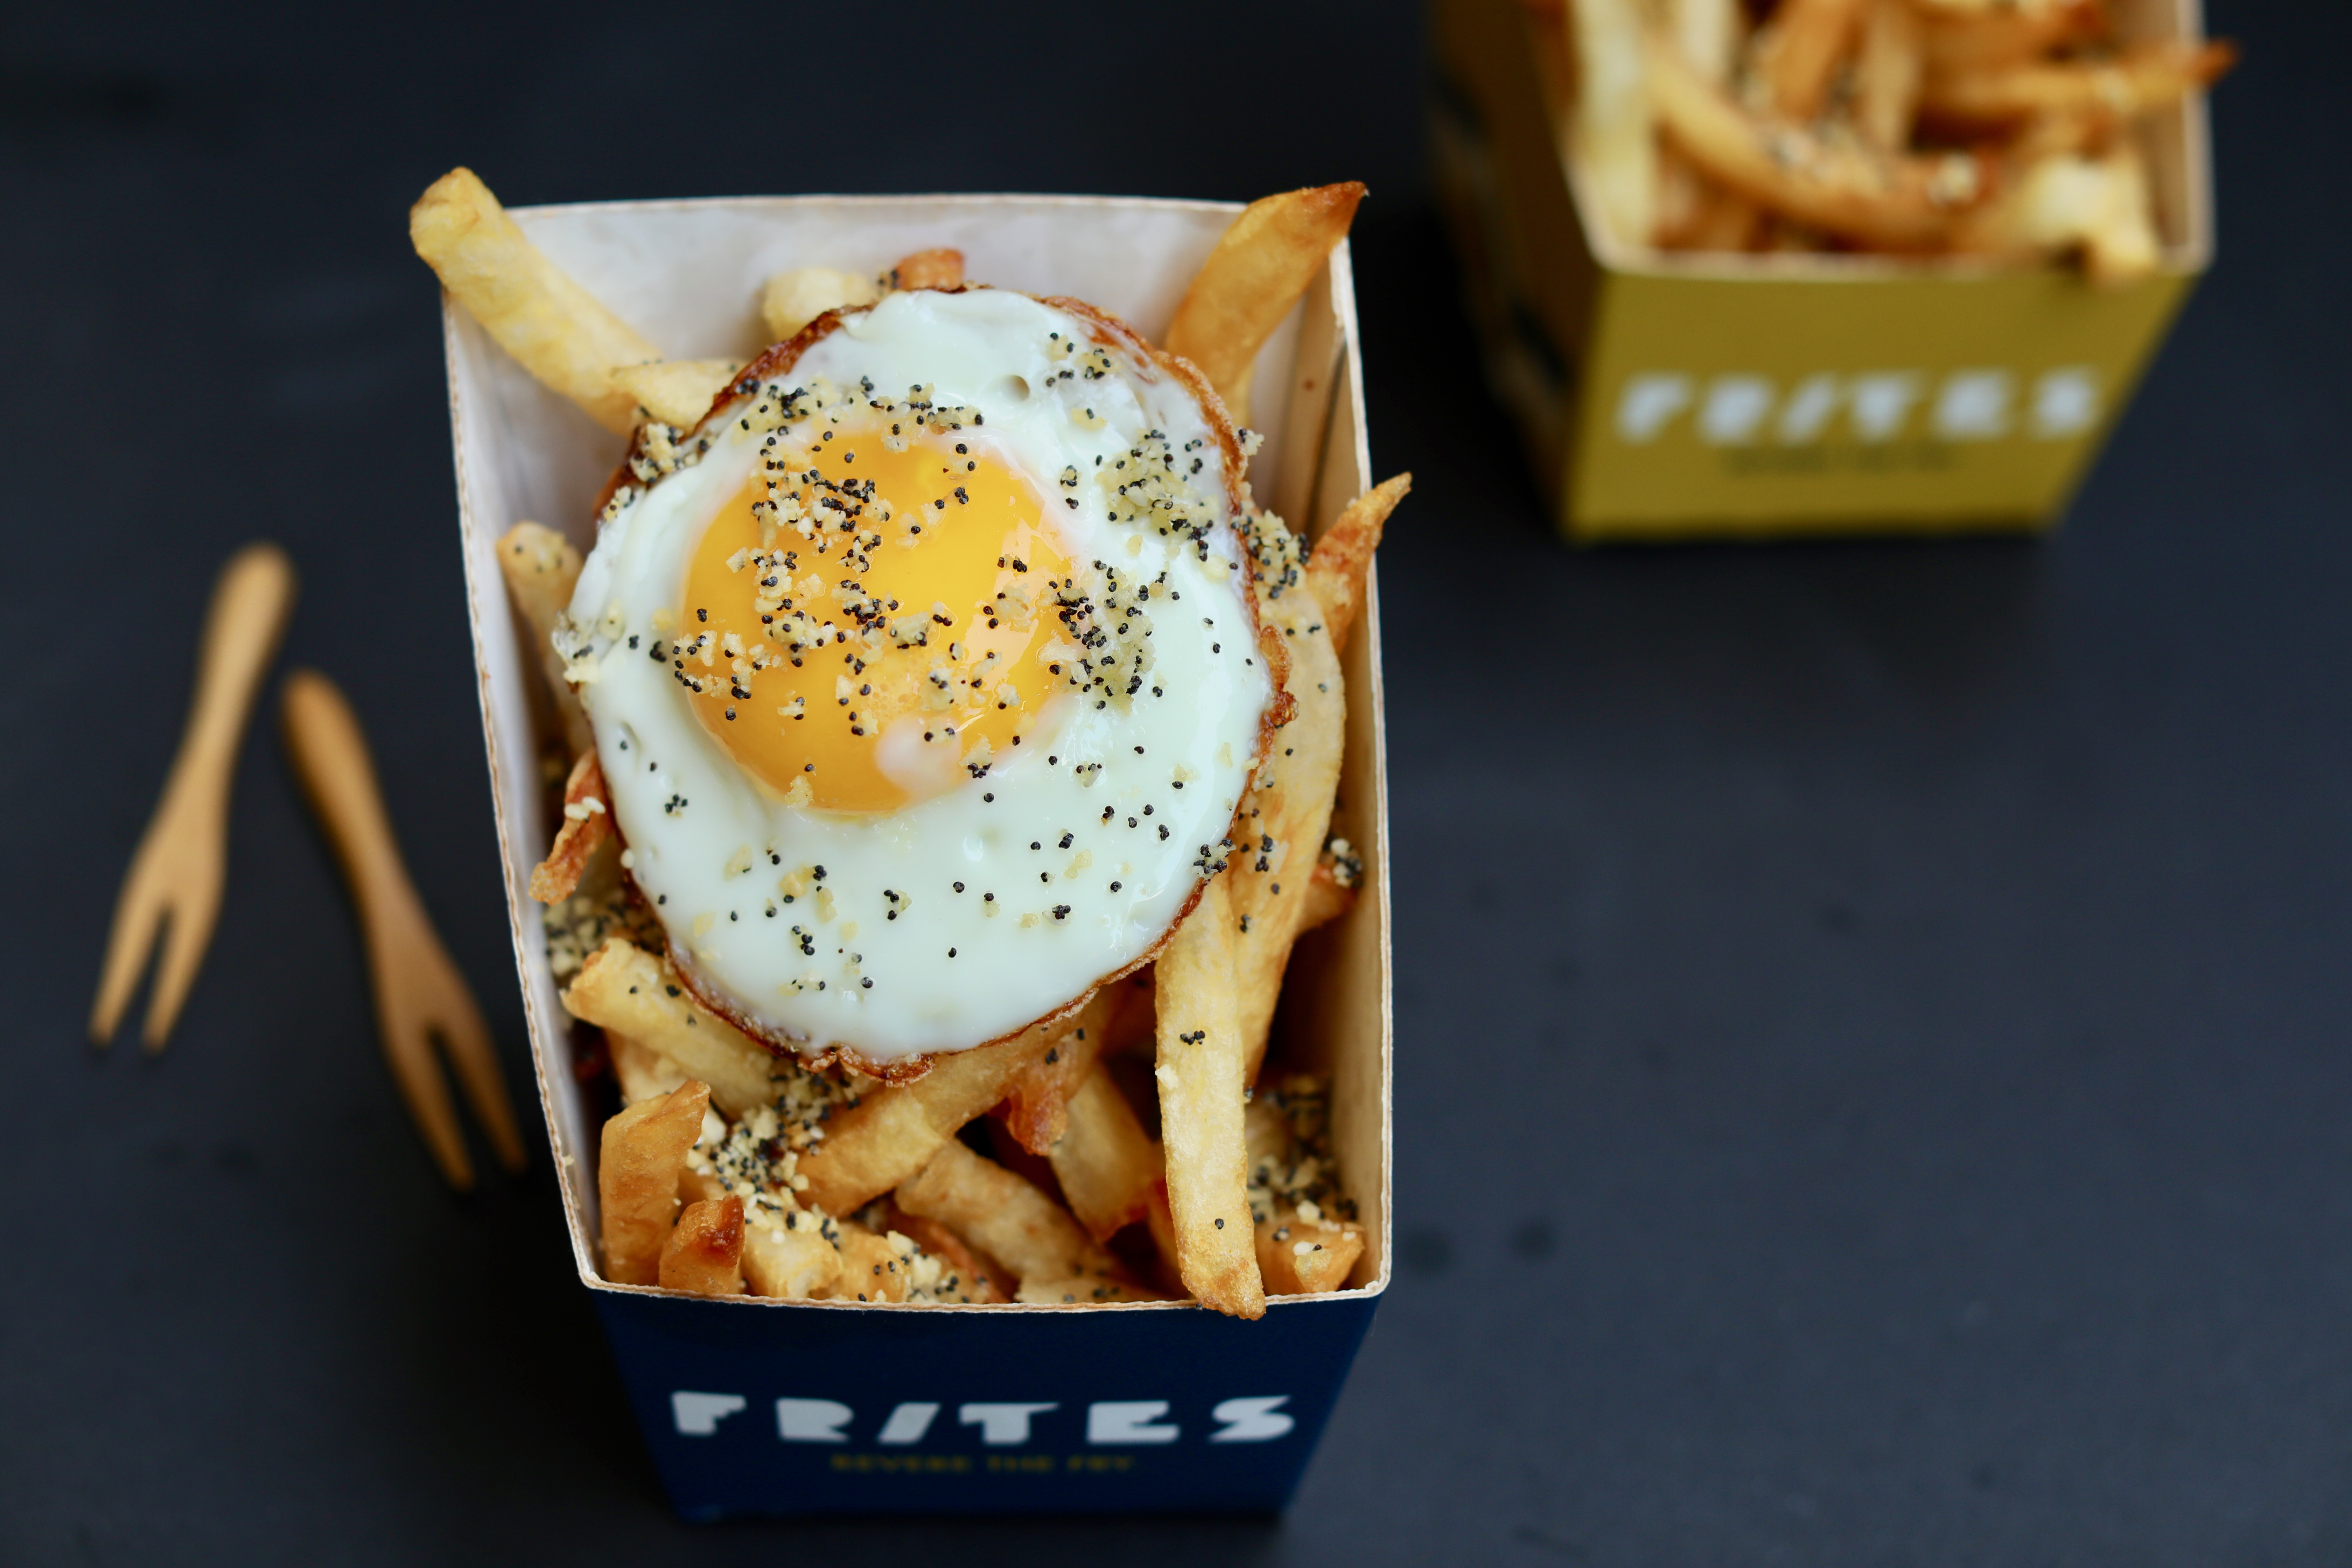 Revealed: The French Fry-Only Menu Headed to the Strip